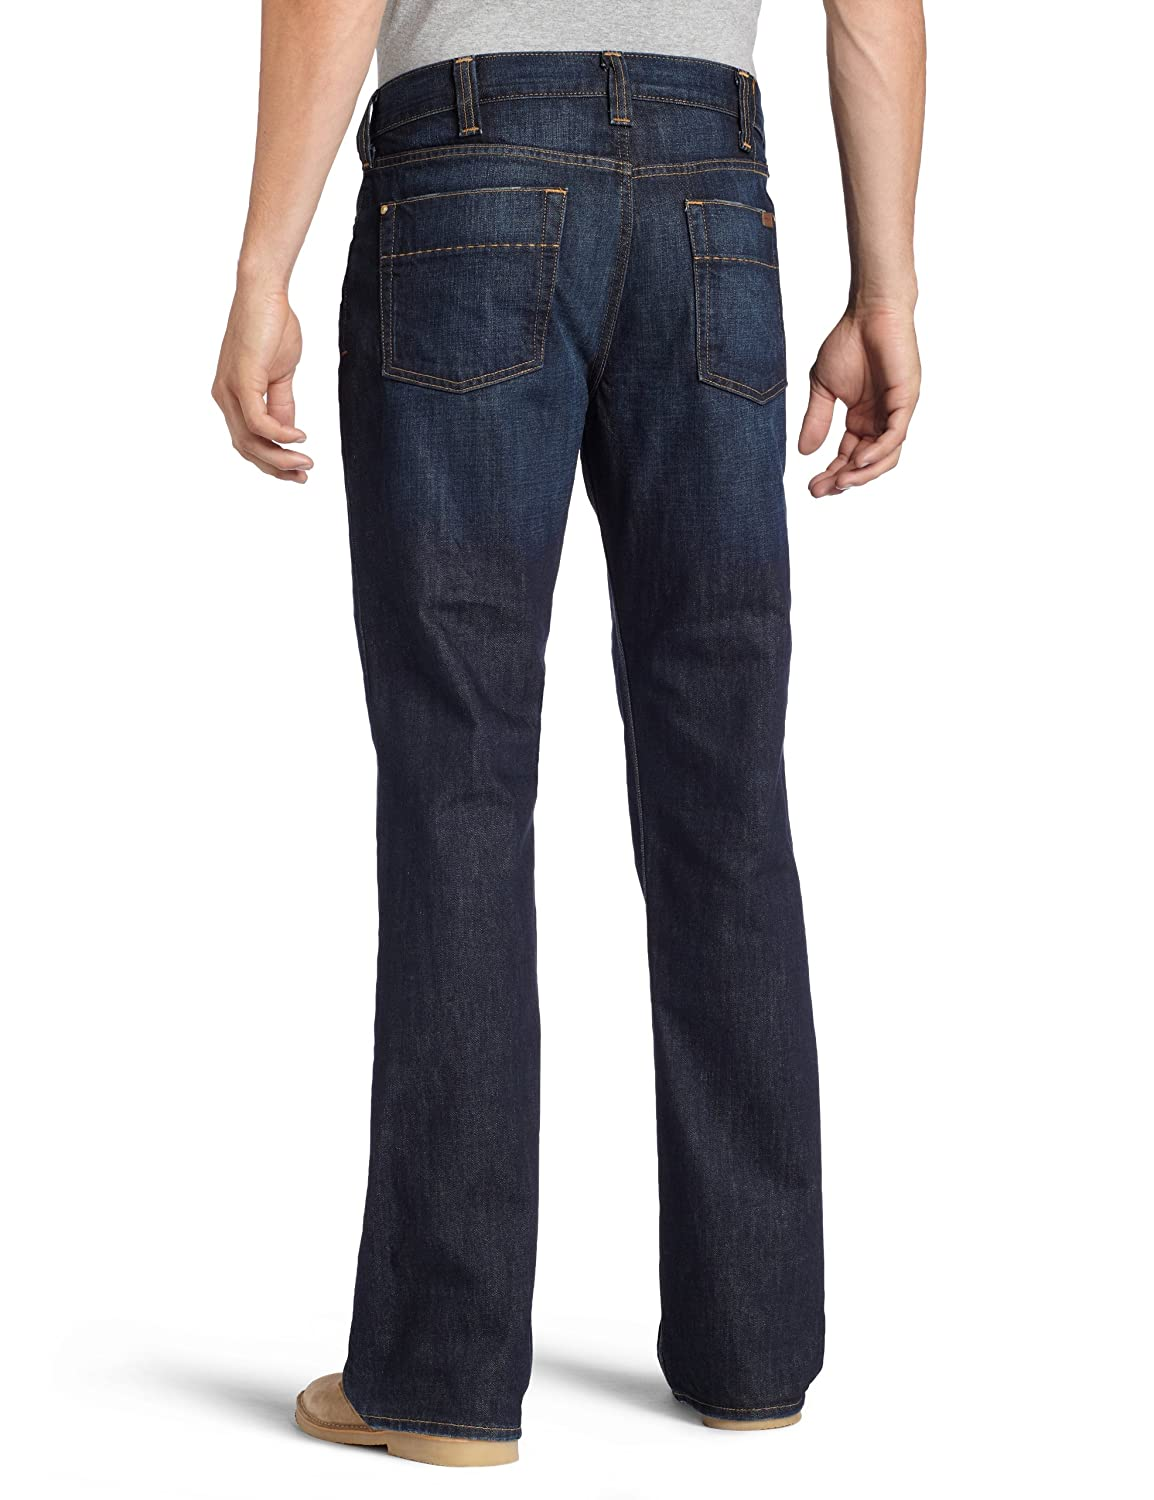 de9759d7130 Carhartt Men's Series 1889 Relaxed Fit Jean,Dark Retro,40W x 30L:  Amazon.co.uk: Clothing